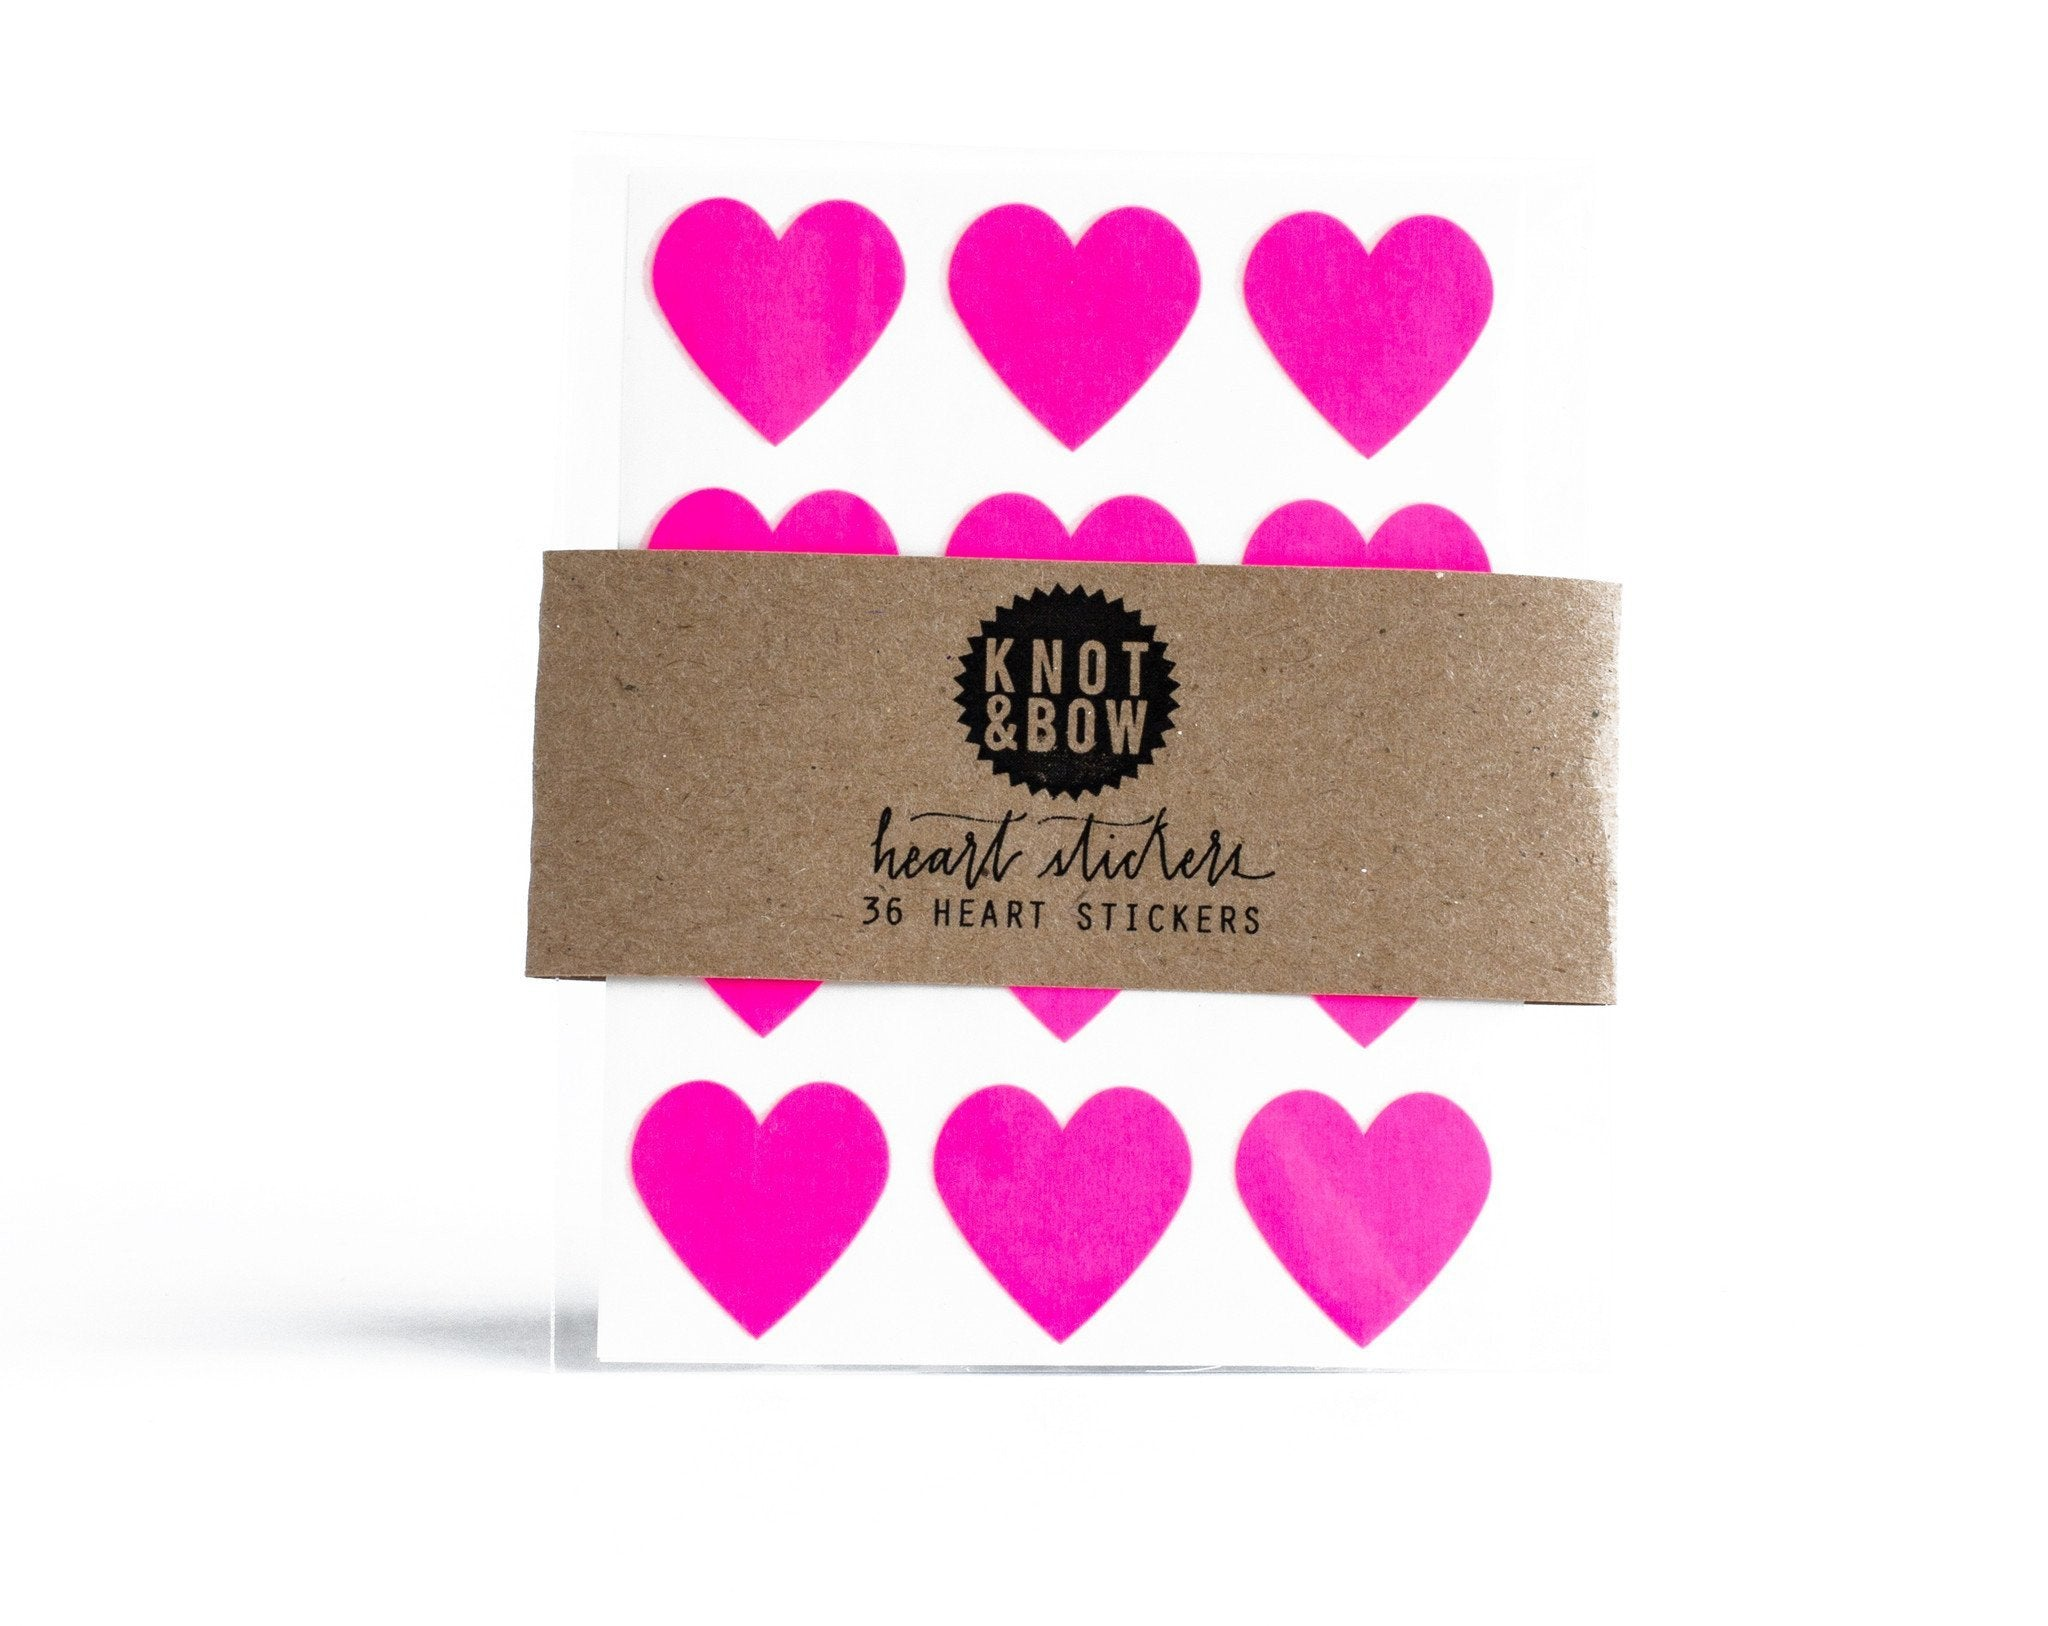 Pack of 36 pink heart shaped stickers at www.onceuponaflutter.com